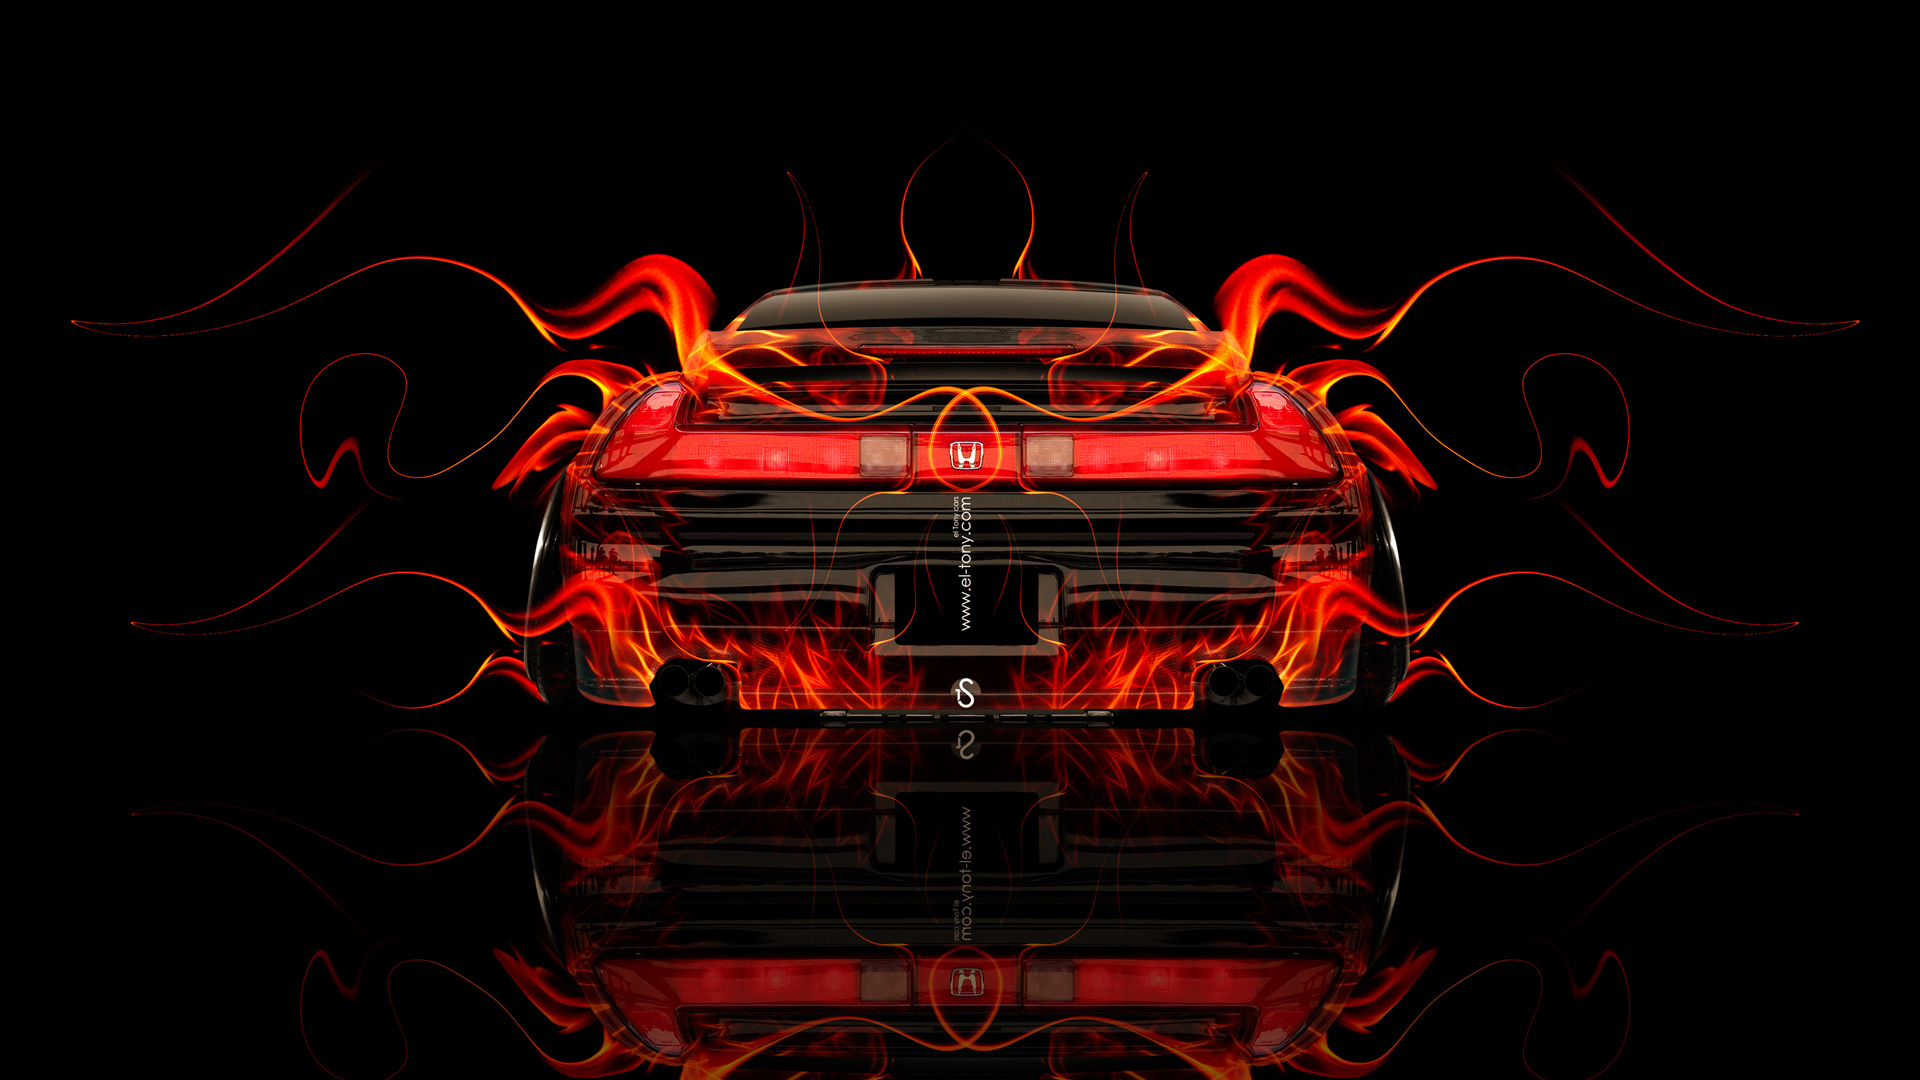 Genial Honda NSX JDM Back Fire Abstract Car 2014